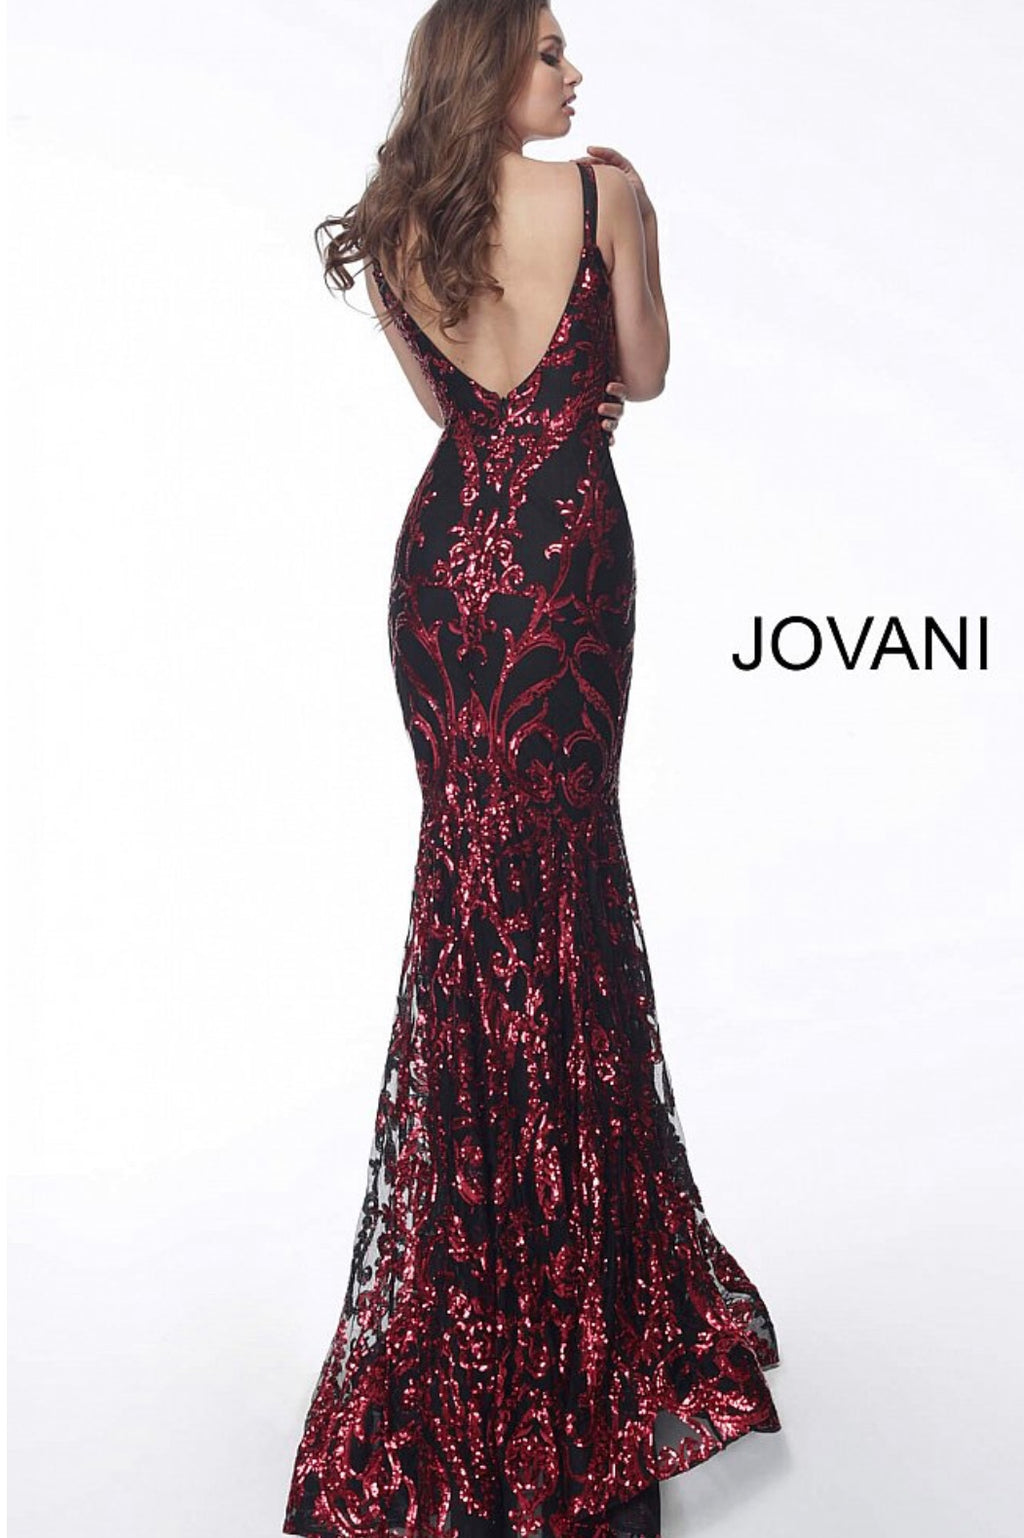 JOVANI 63350 Plunging Neck Fitted Embellished Evening Dress